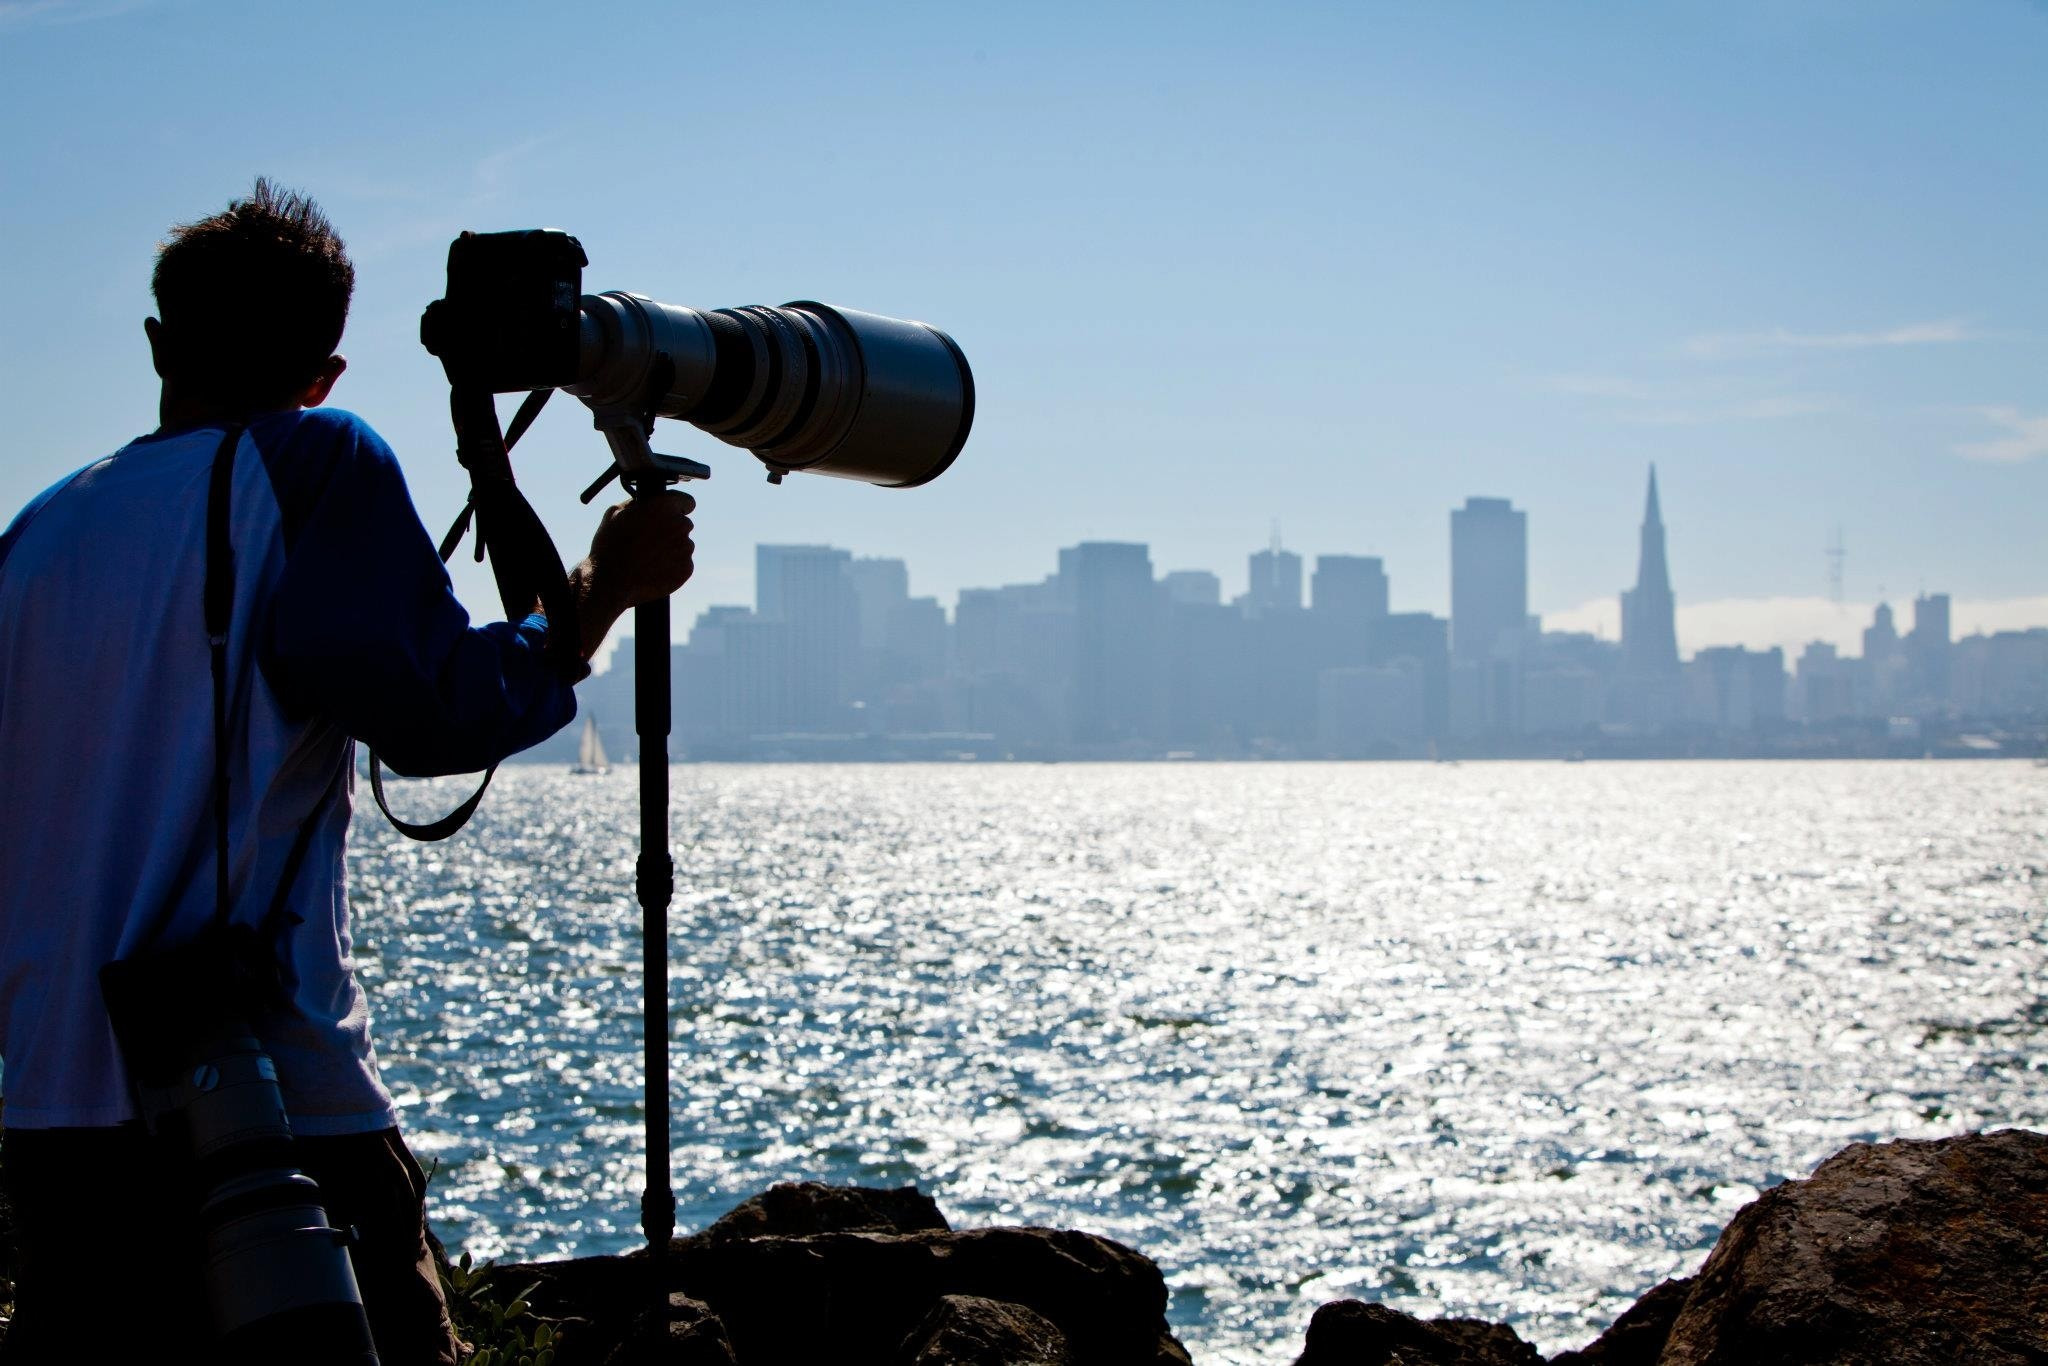 Photograph Telephoto SF by Sheldon Steere on 500px